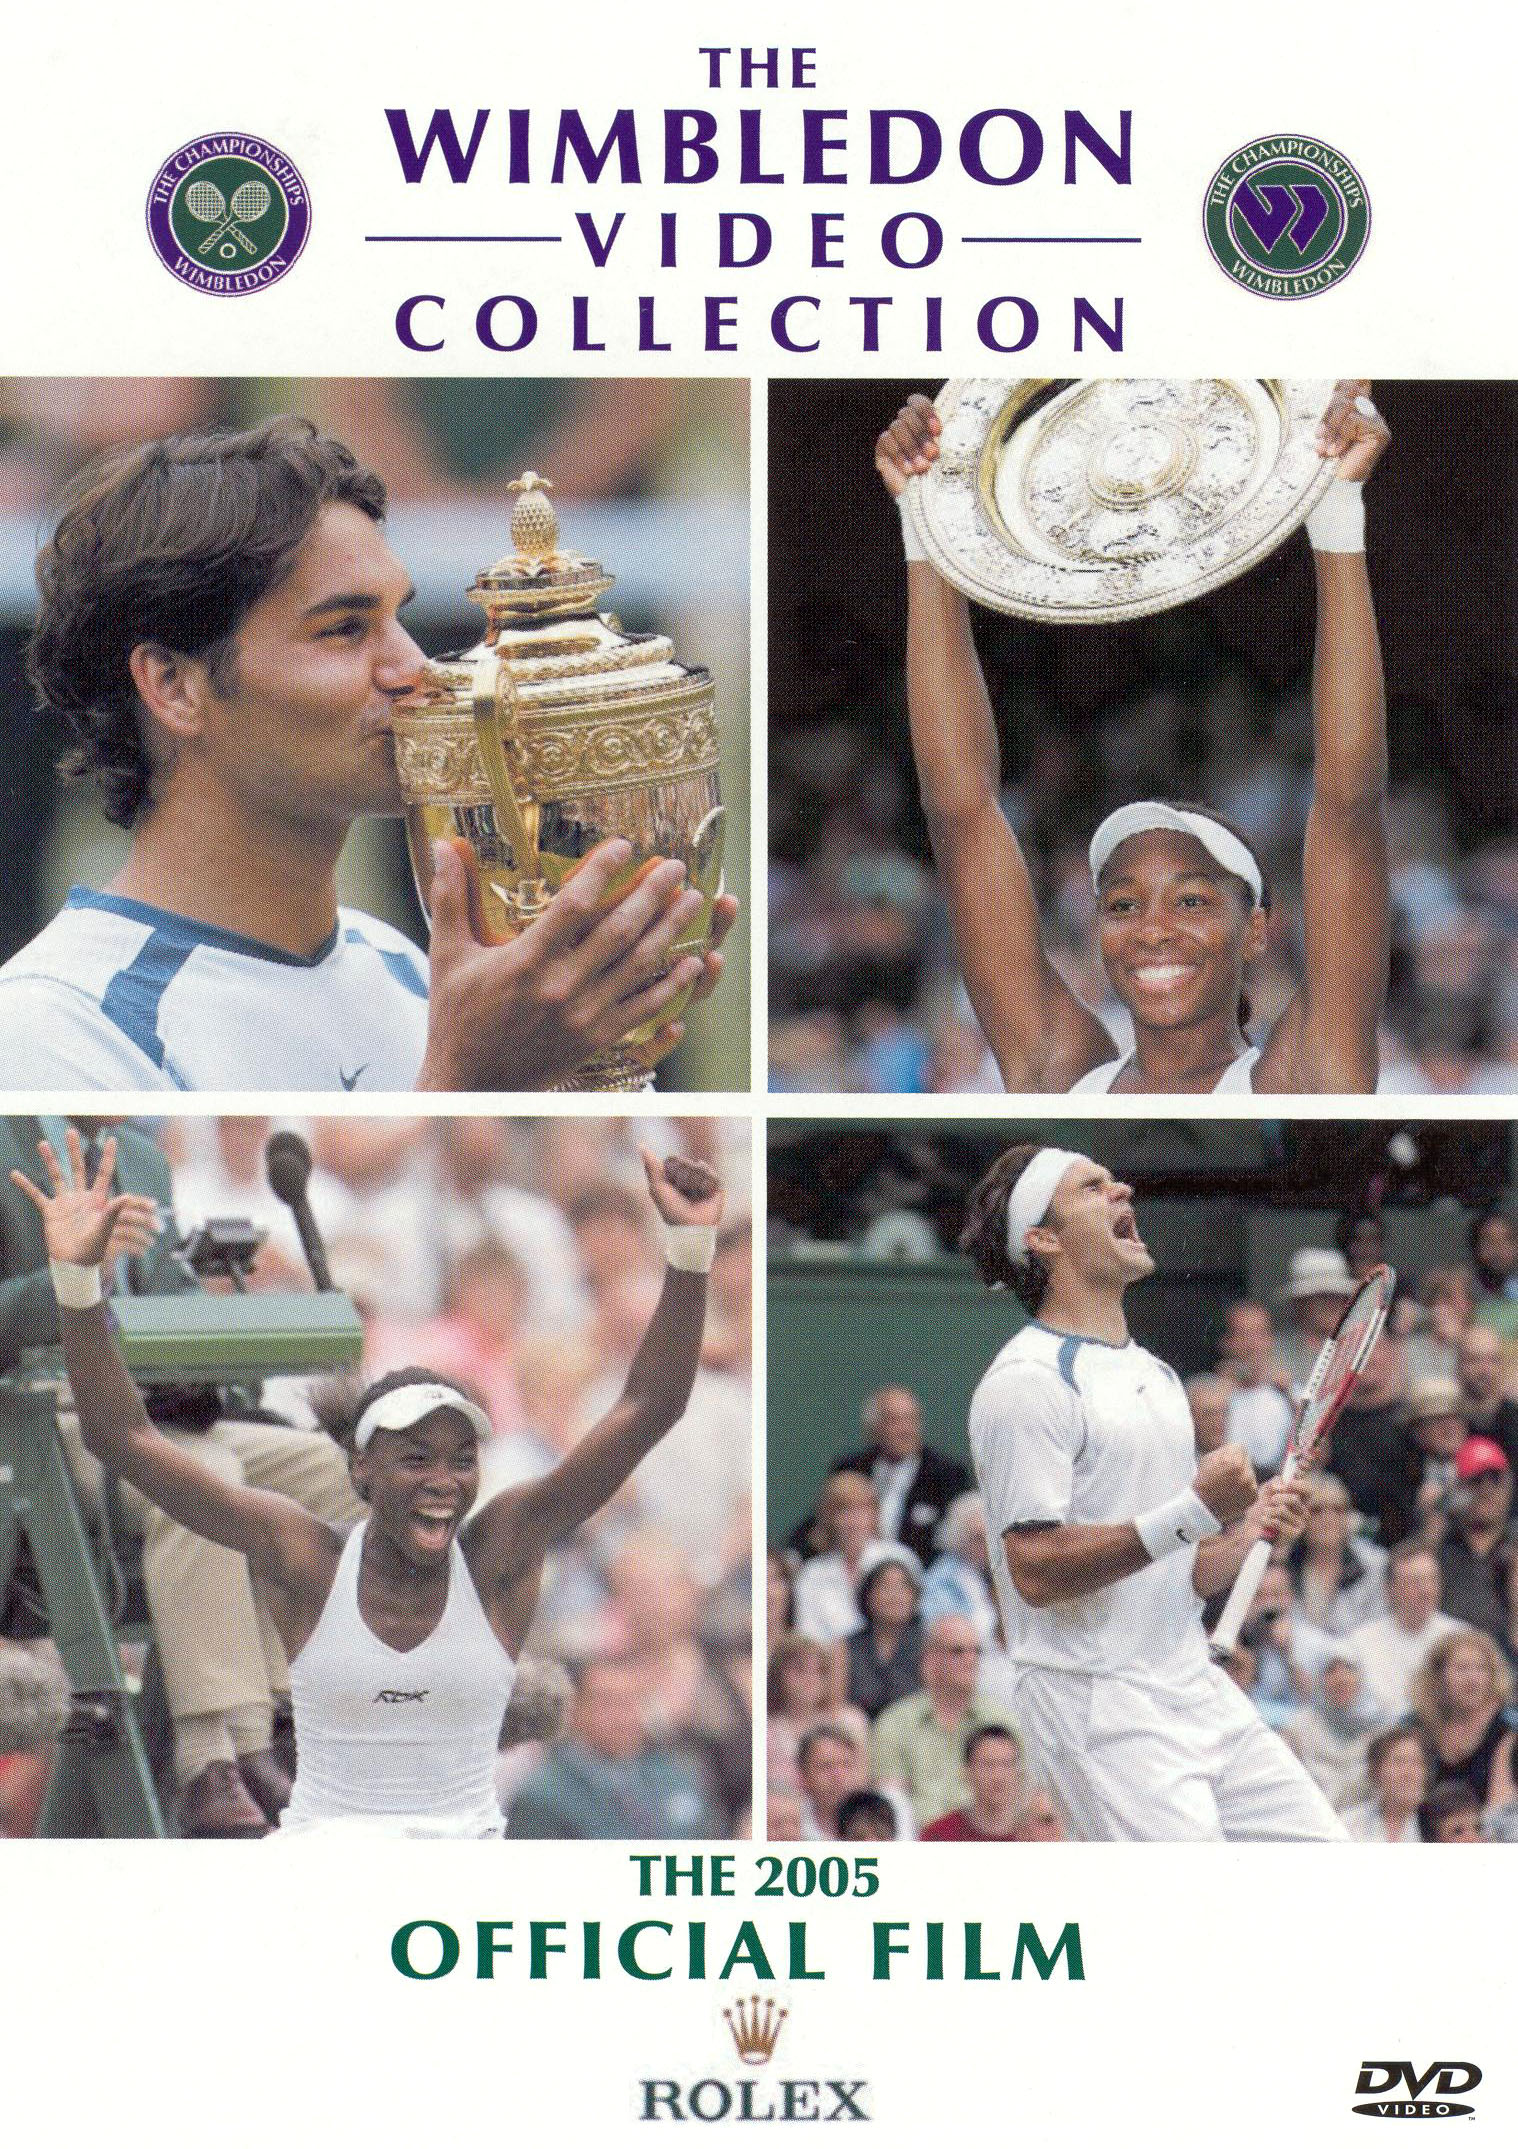 The Wimbledon Video Collection: The 2005 Official Film